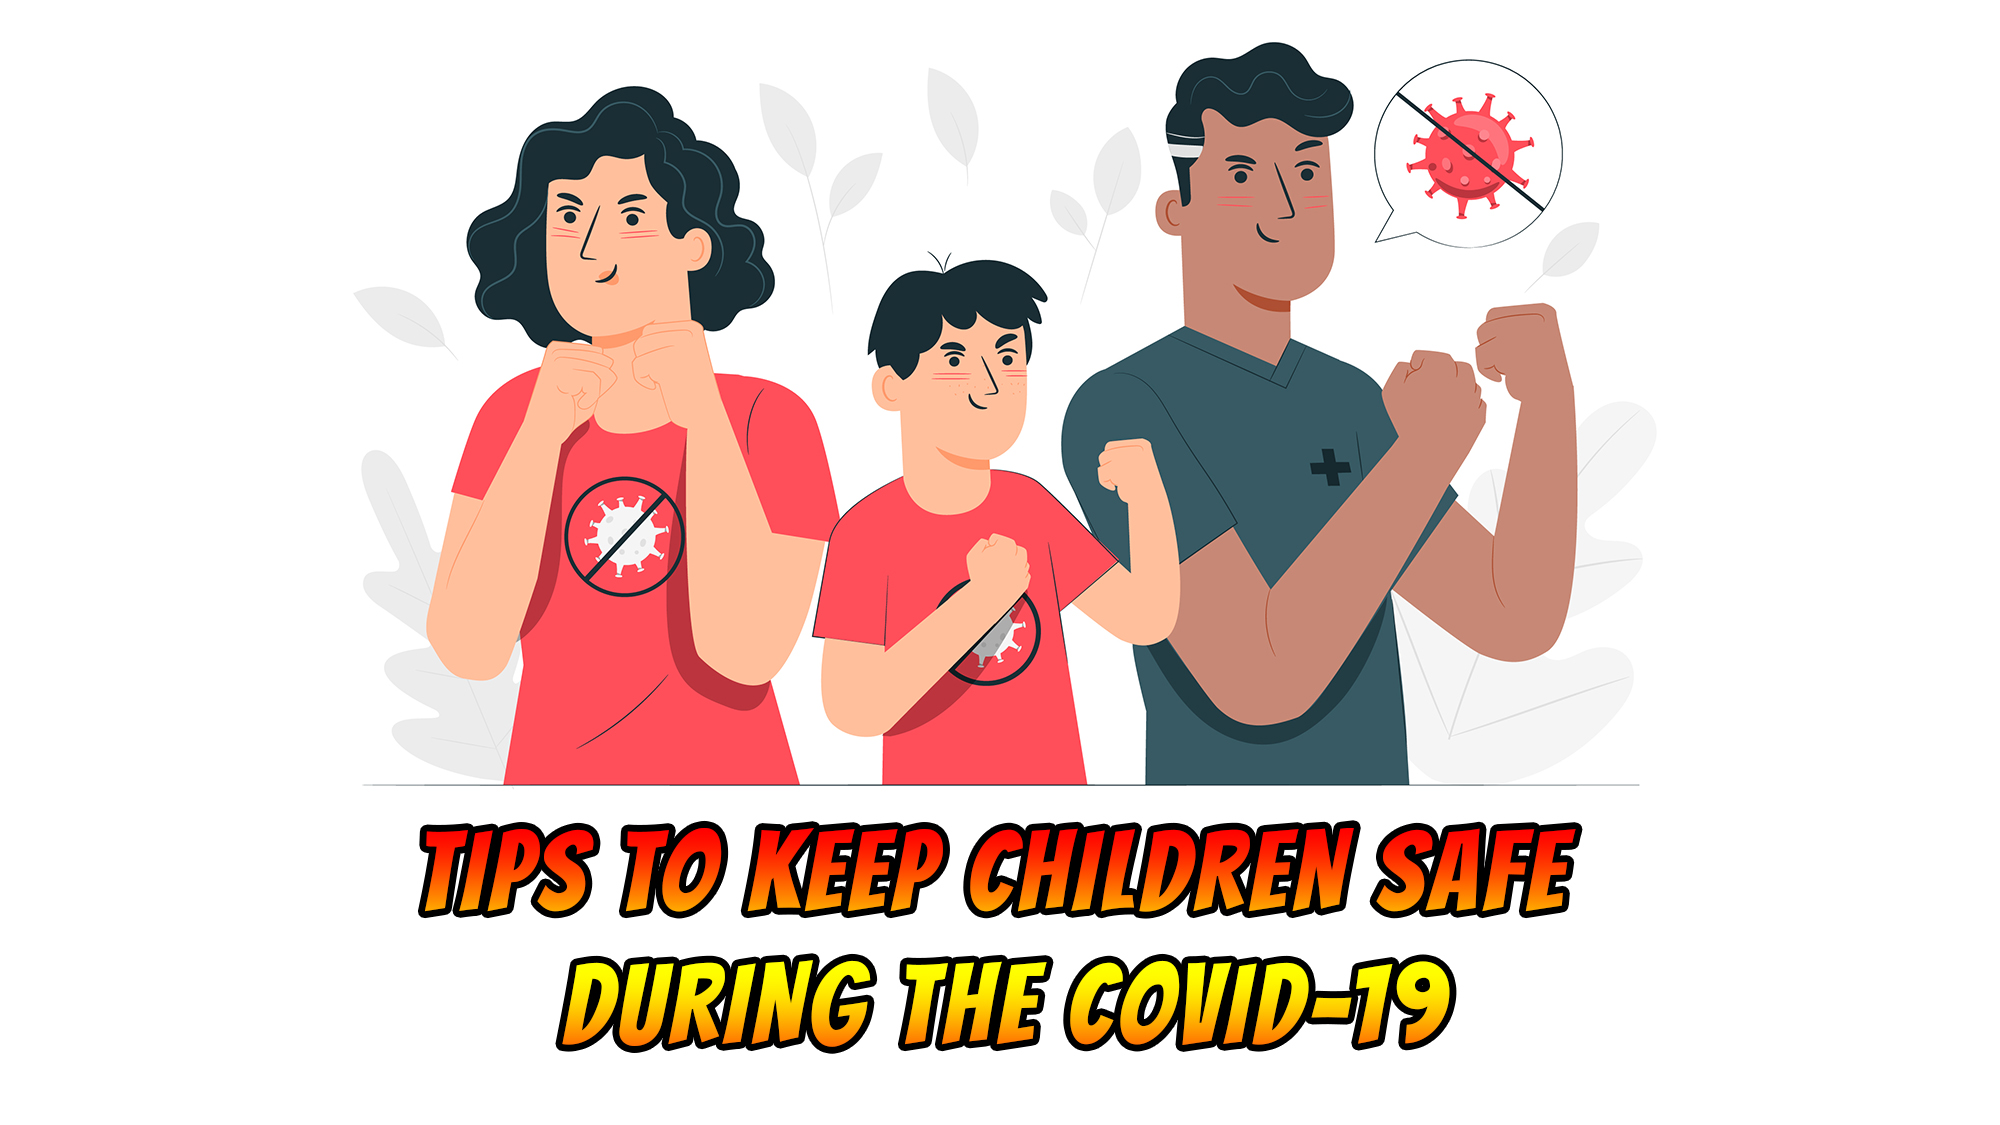 Tips to Keep Children Safe During the COVID-19